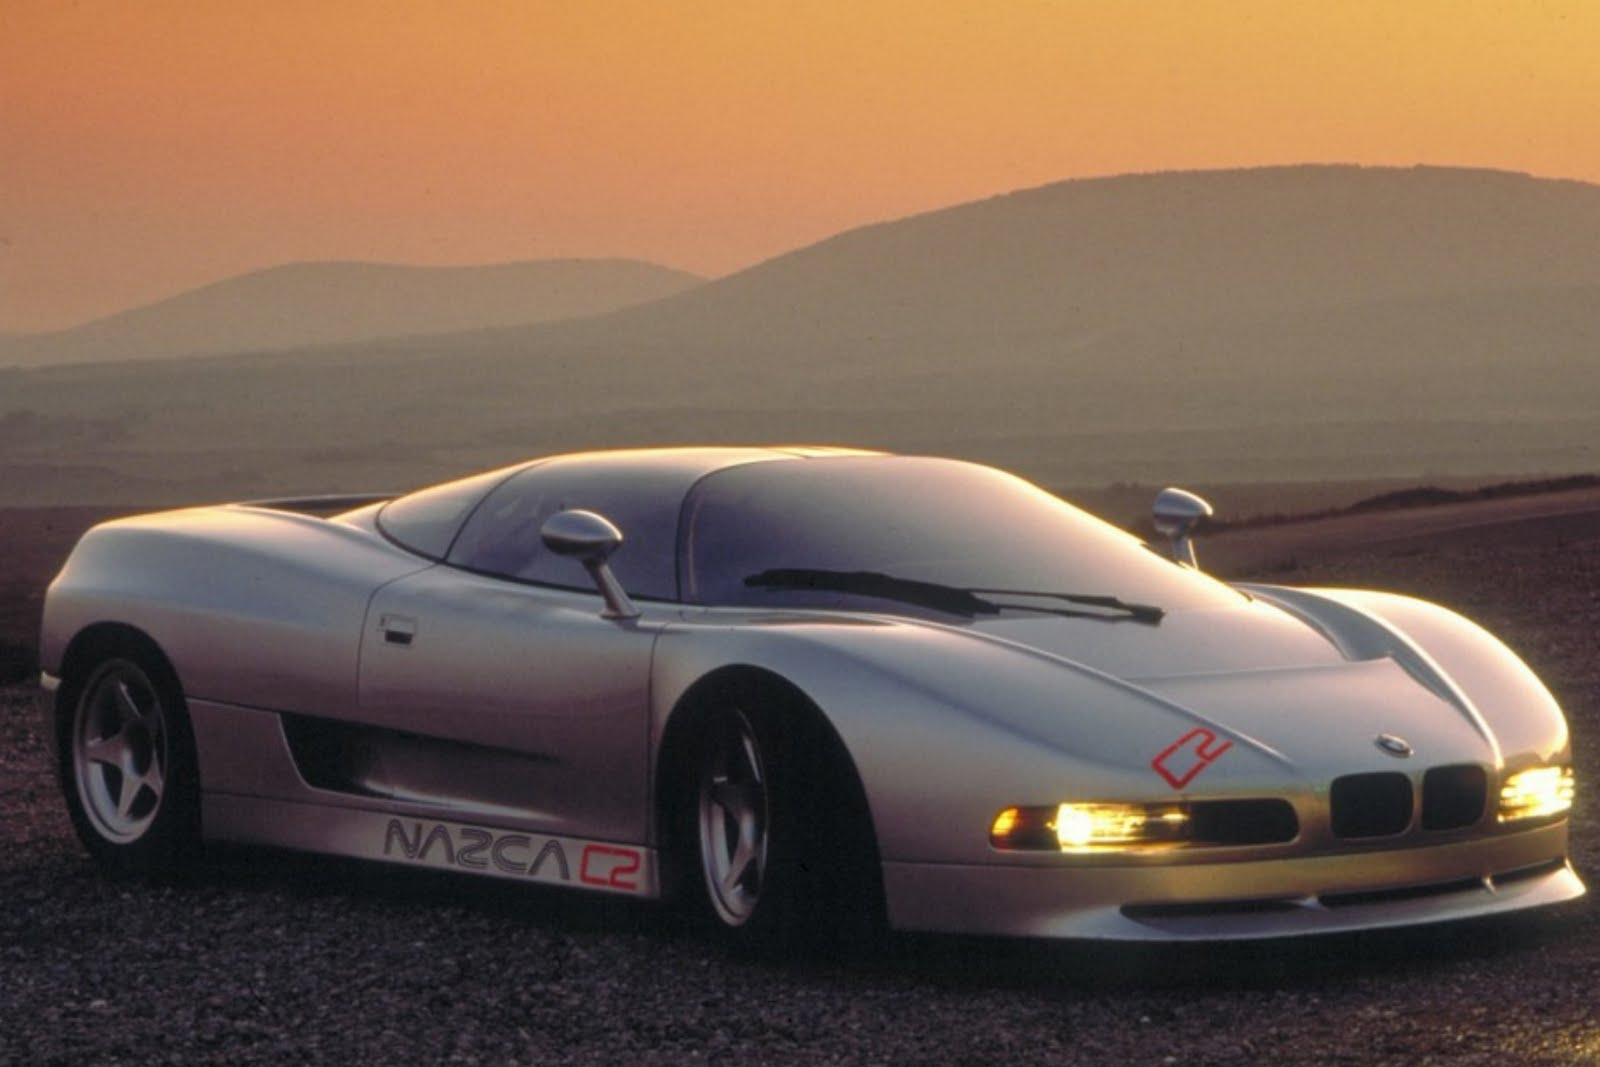 1993 Italdesign Nazca #16